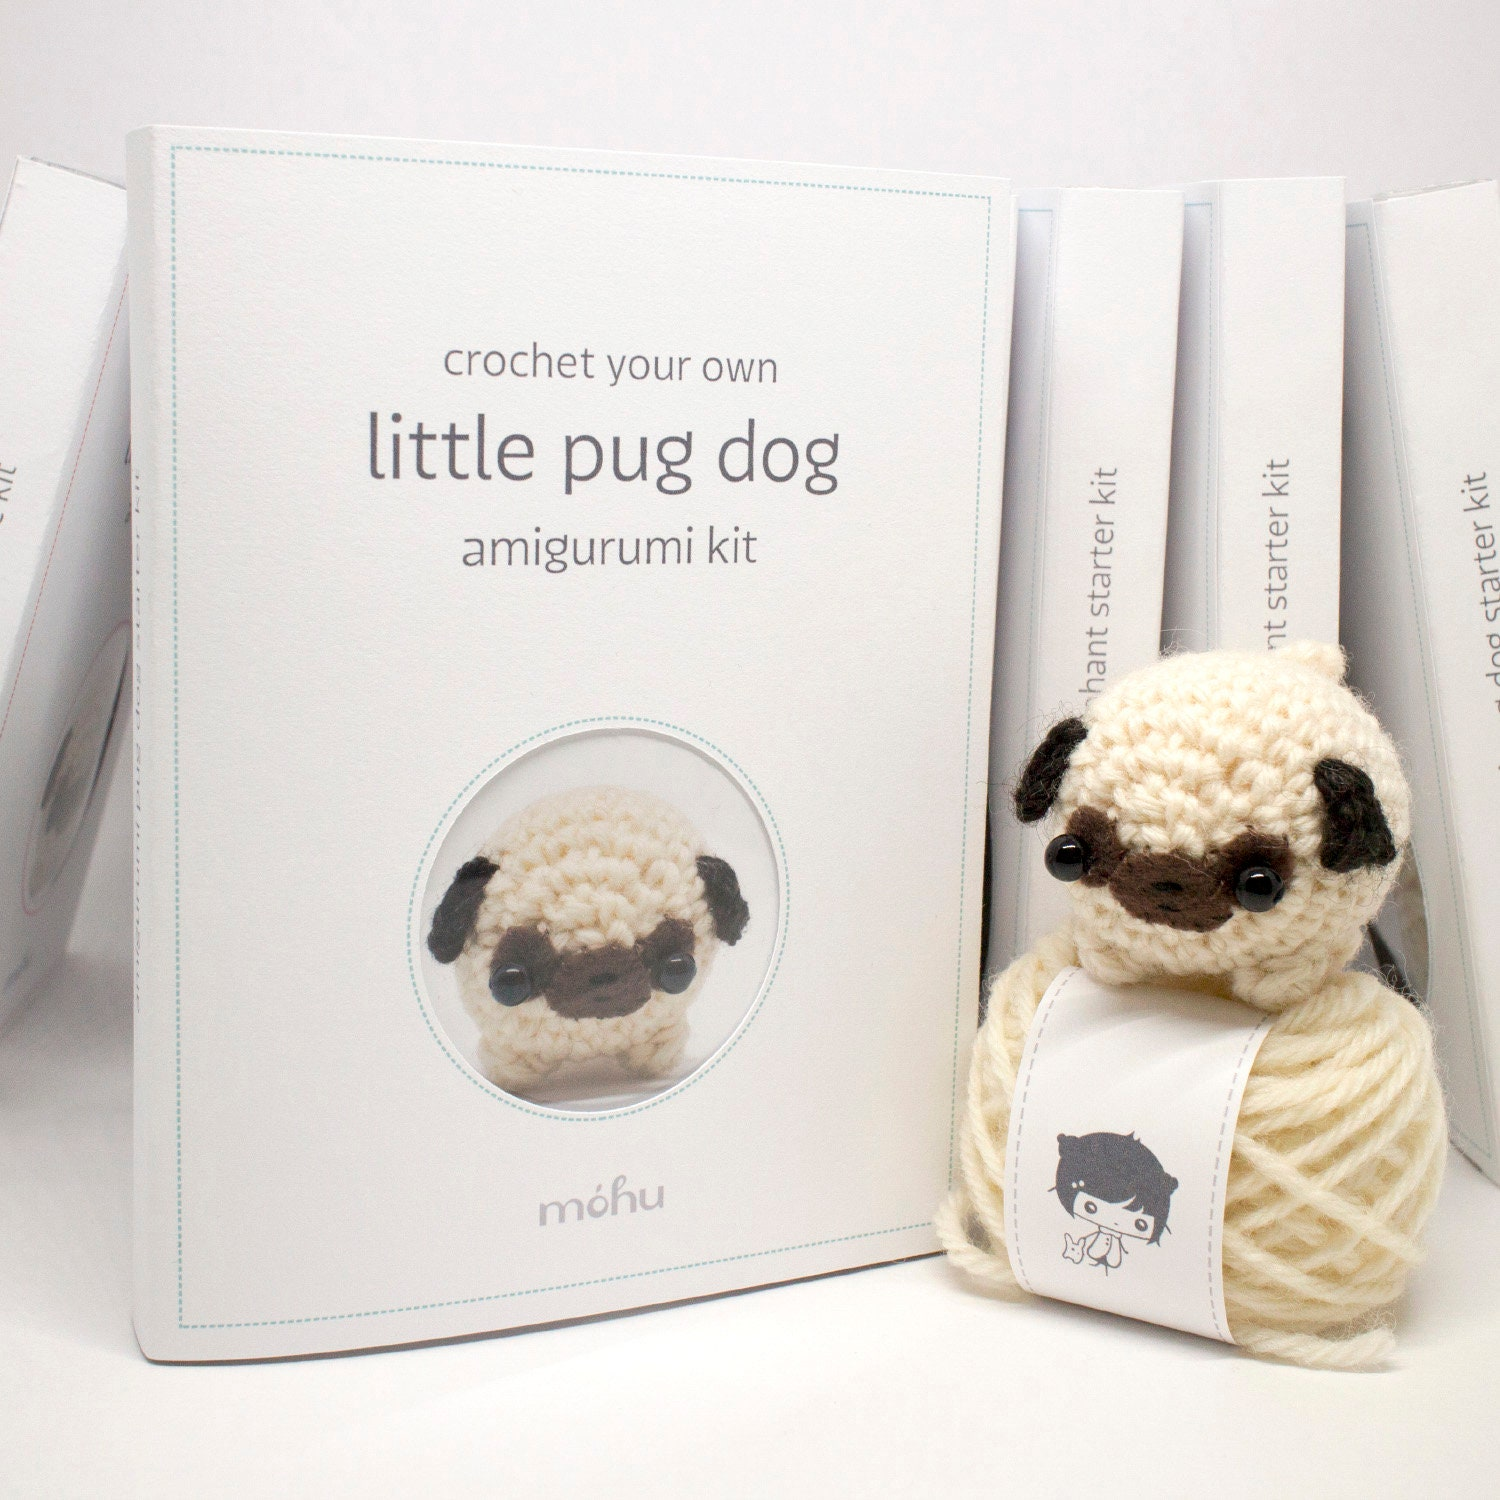 Pug Dog Crochet Pattern Lots Of Ideas Video Tutorial | Crochet dog ... | 1500x1500